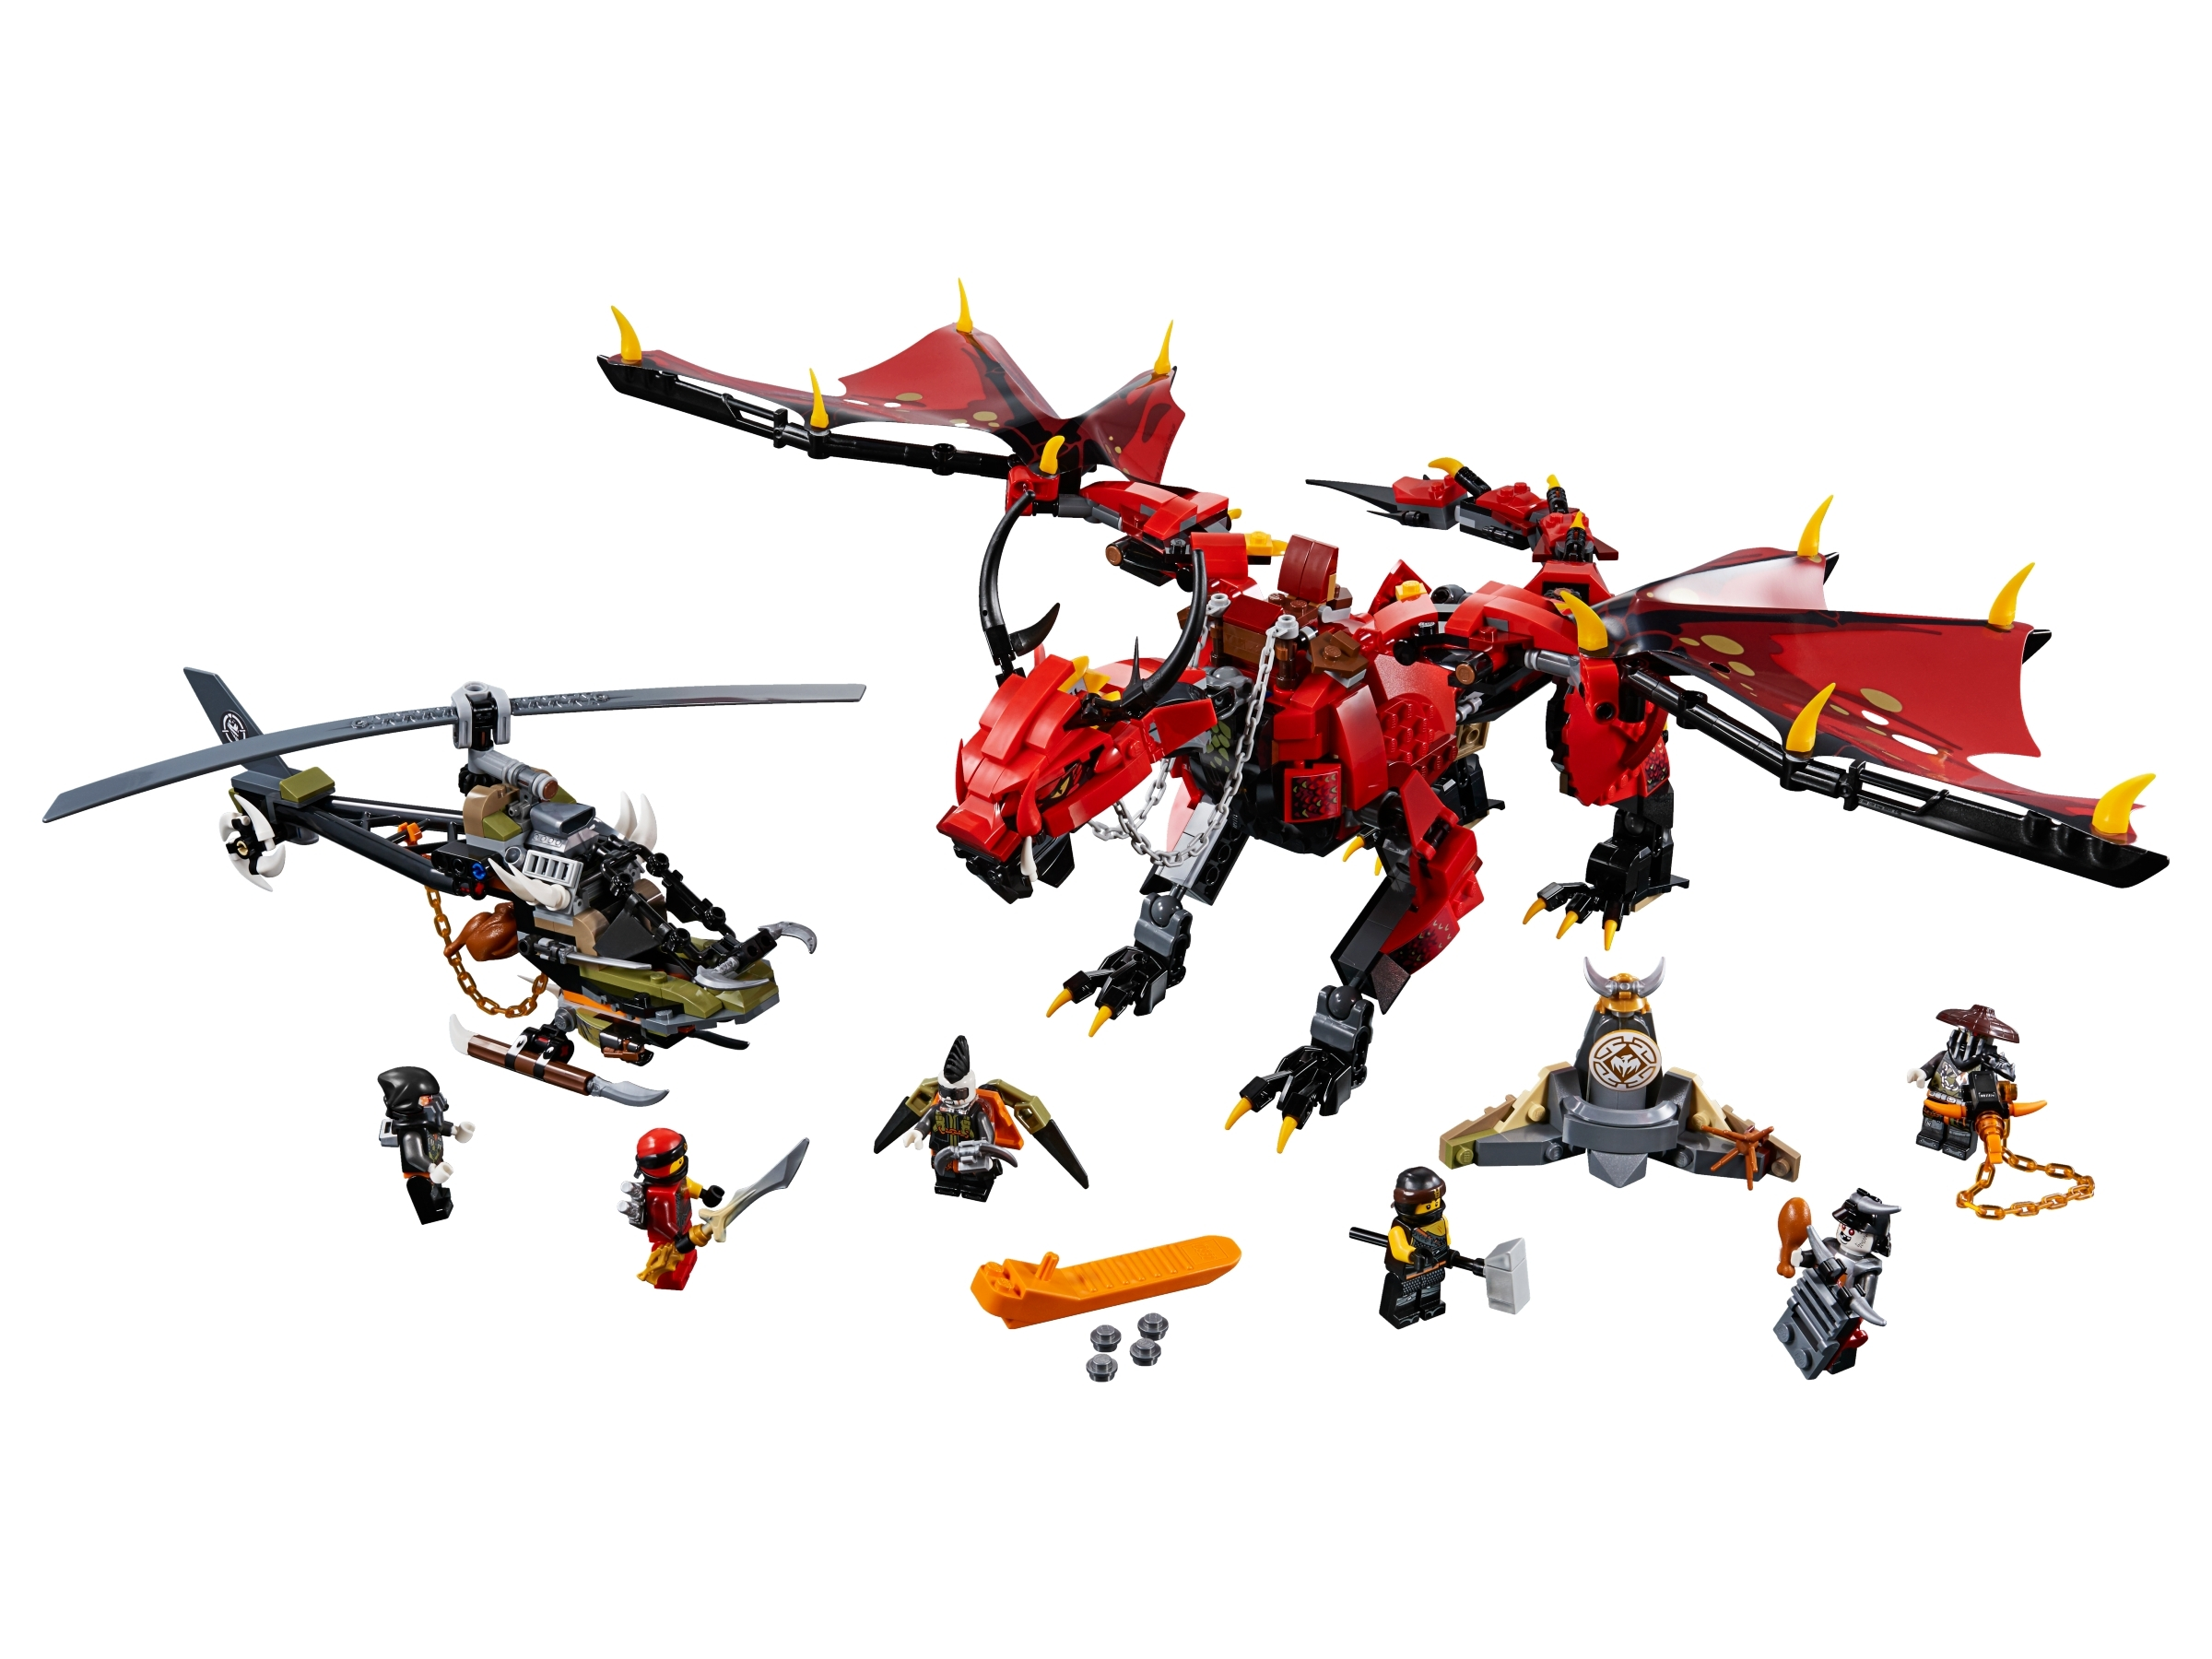 Firstbourne 70653 Ninjago Buy Online At The Official Lego Shop Us The helicopter model features stud shooters, dragon bait and assorted ninja weapons. firstbourne